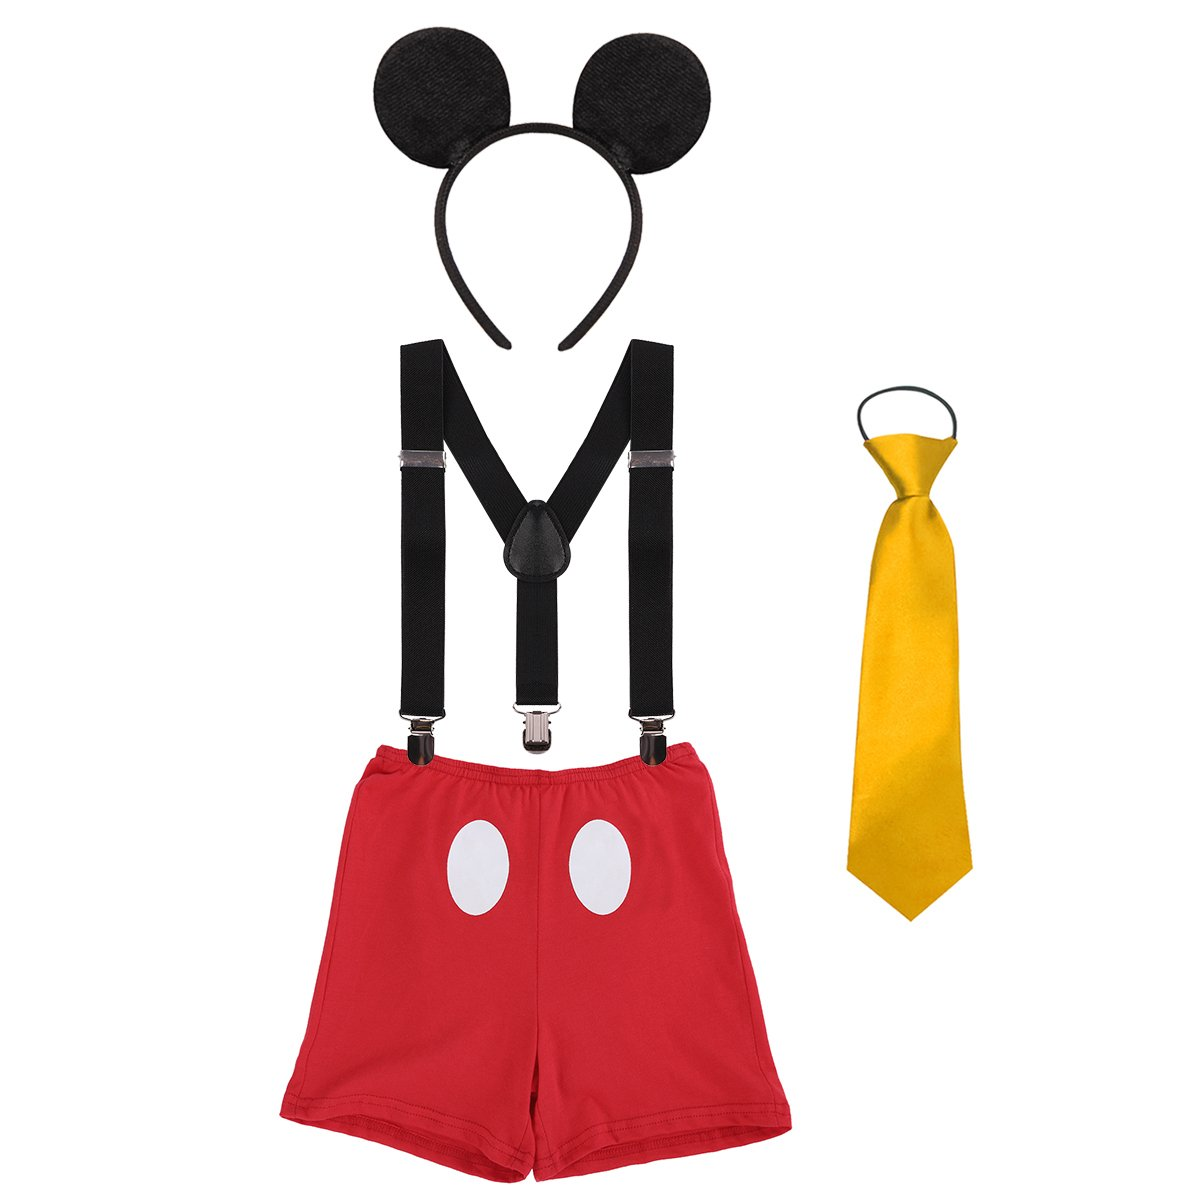 Newborn Infant Baby Boys Toddlers Cute Mouse Costume 1st / 2nd / 3rd Birthday Cake Smash Bloomers Shorts + Clip-On Suspenders Y Back Braces + Necktie + Ears Photography Props 4PCS Outfits